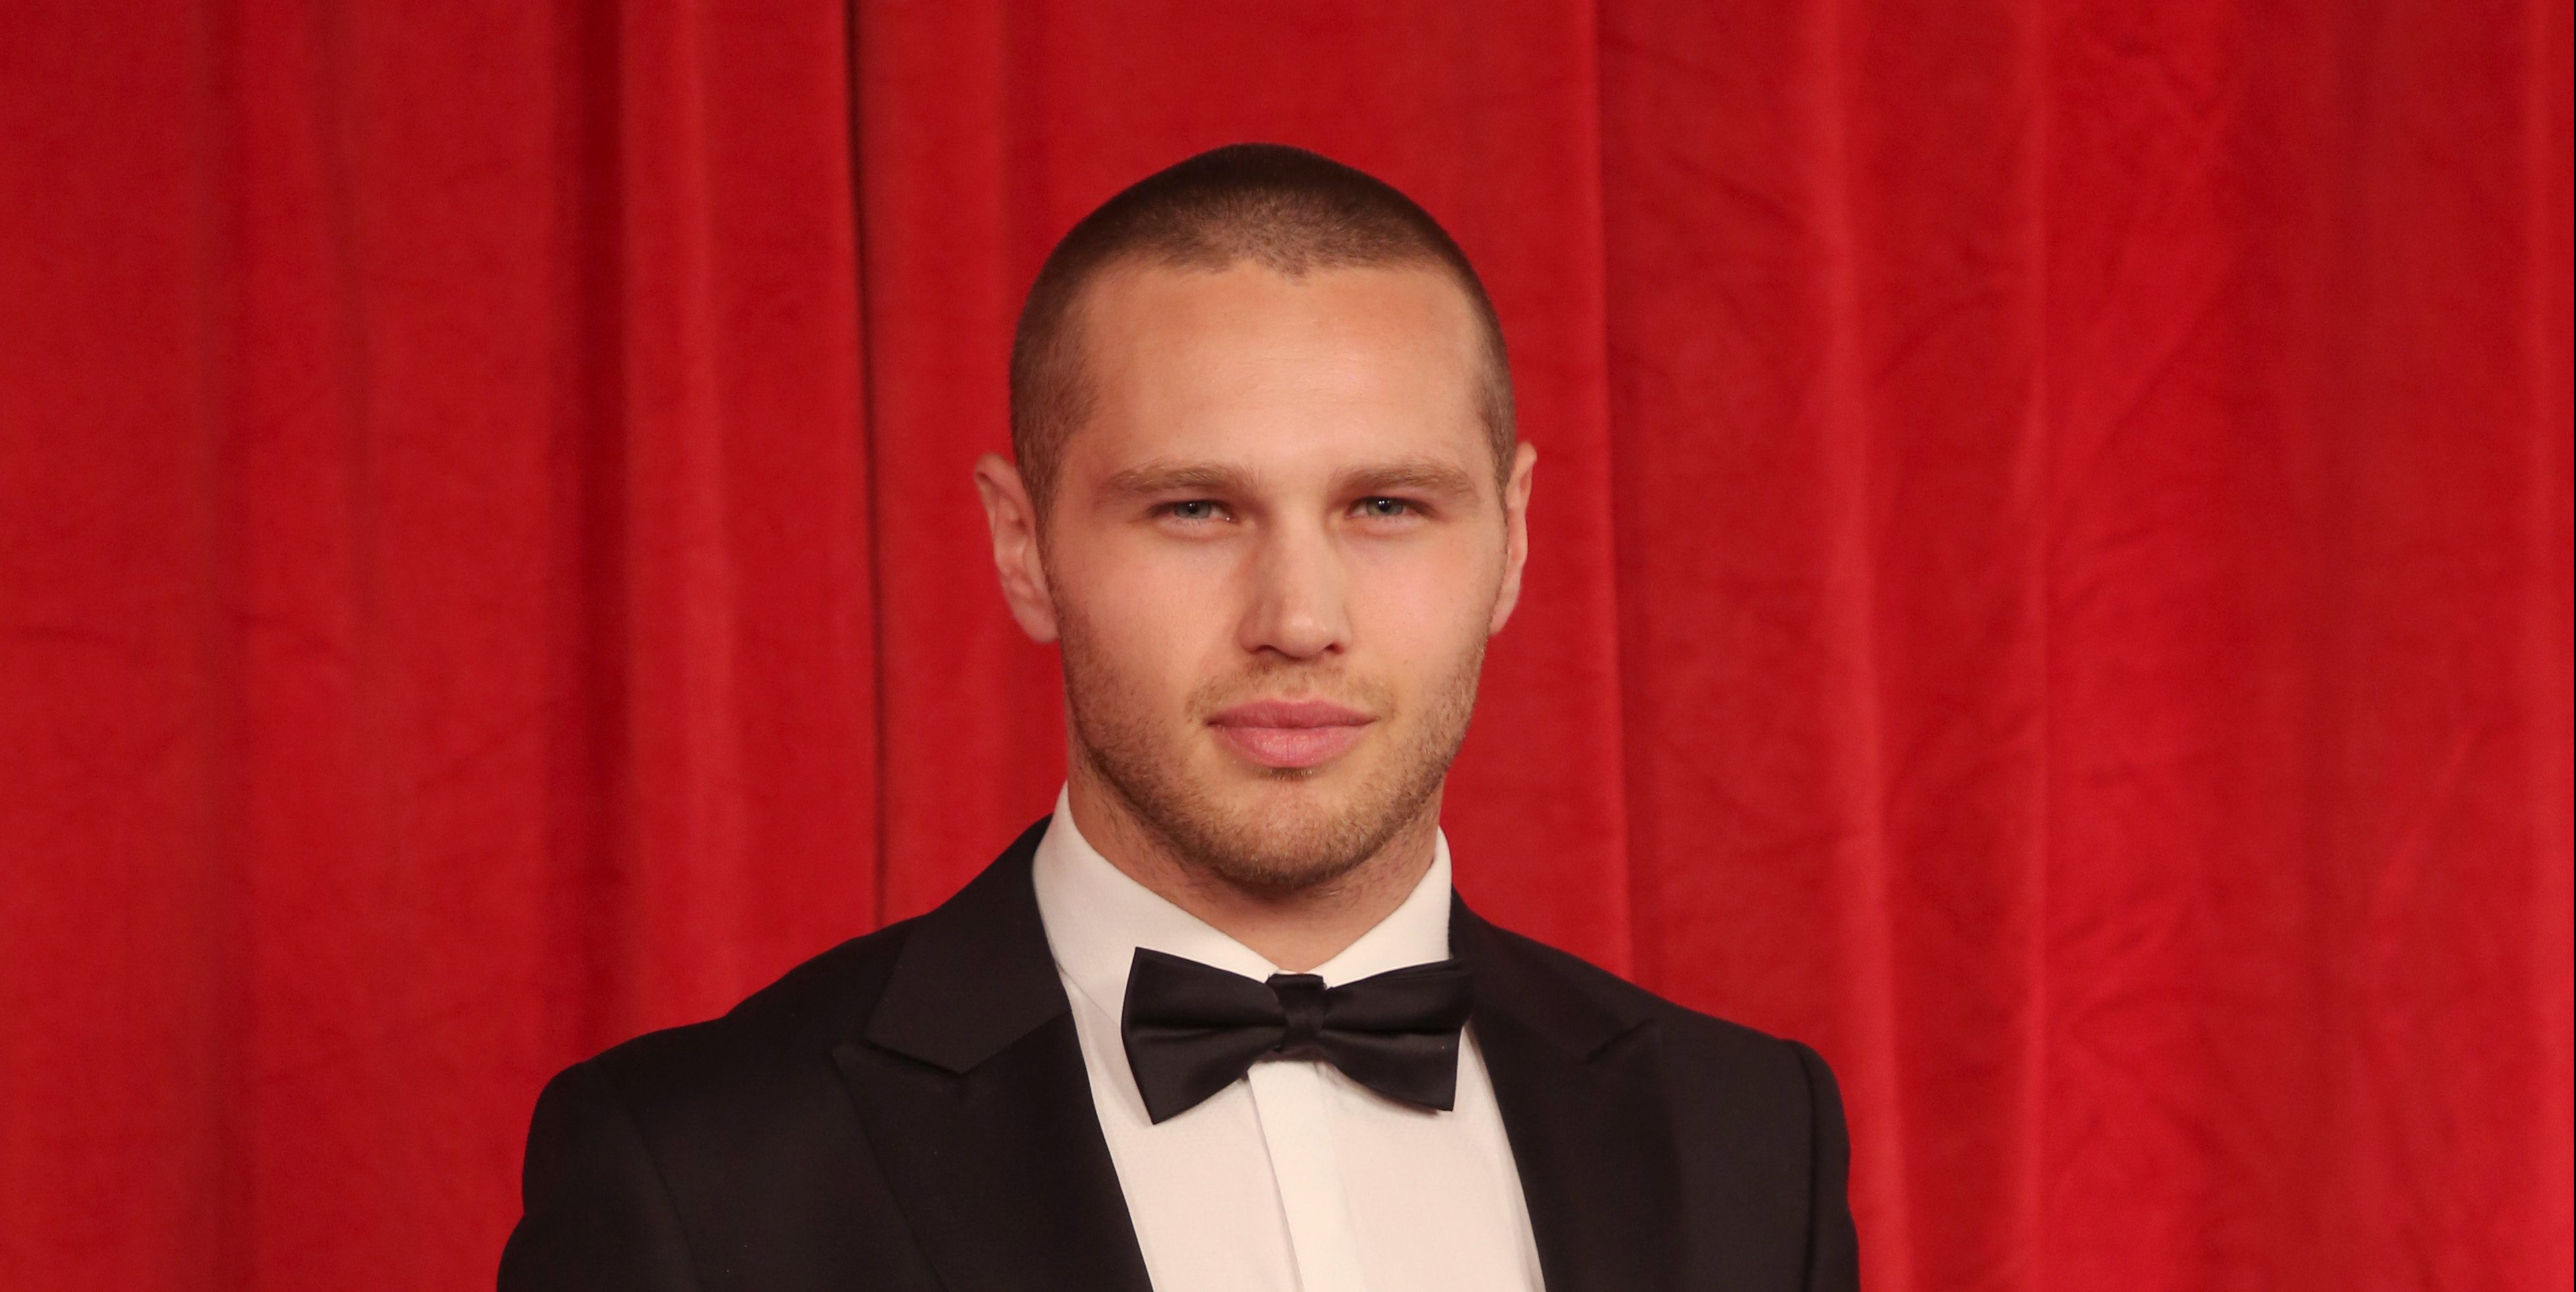 EastEnders' Danny Walters shares relaxing holiday photo from Dubai